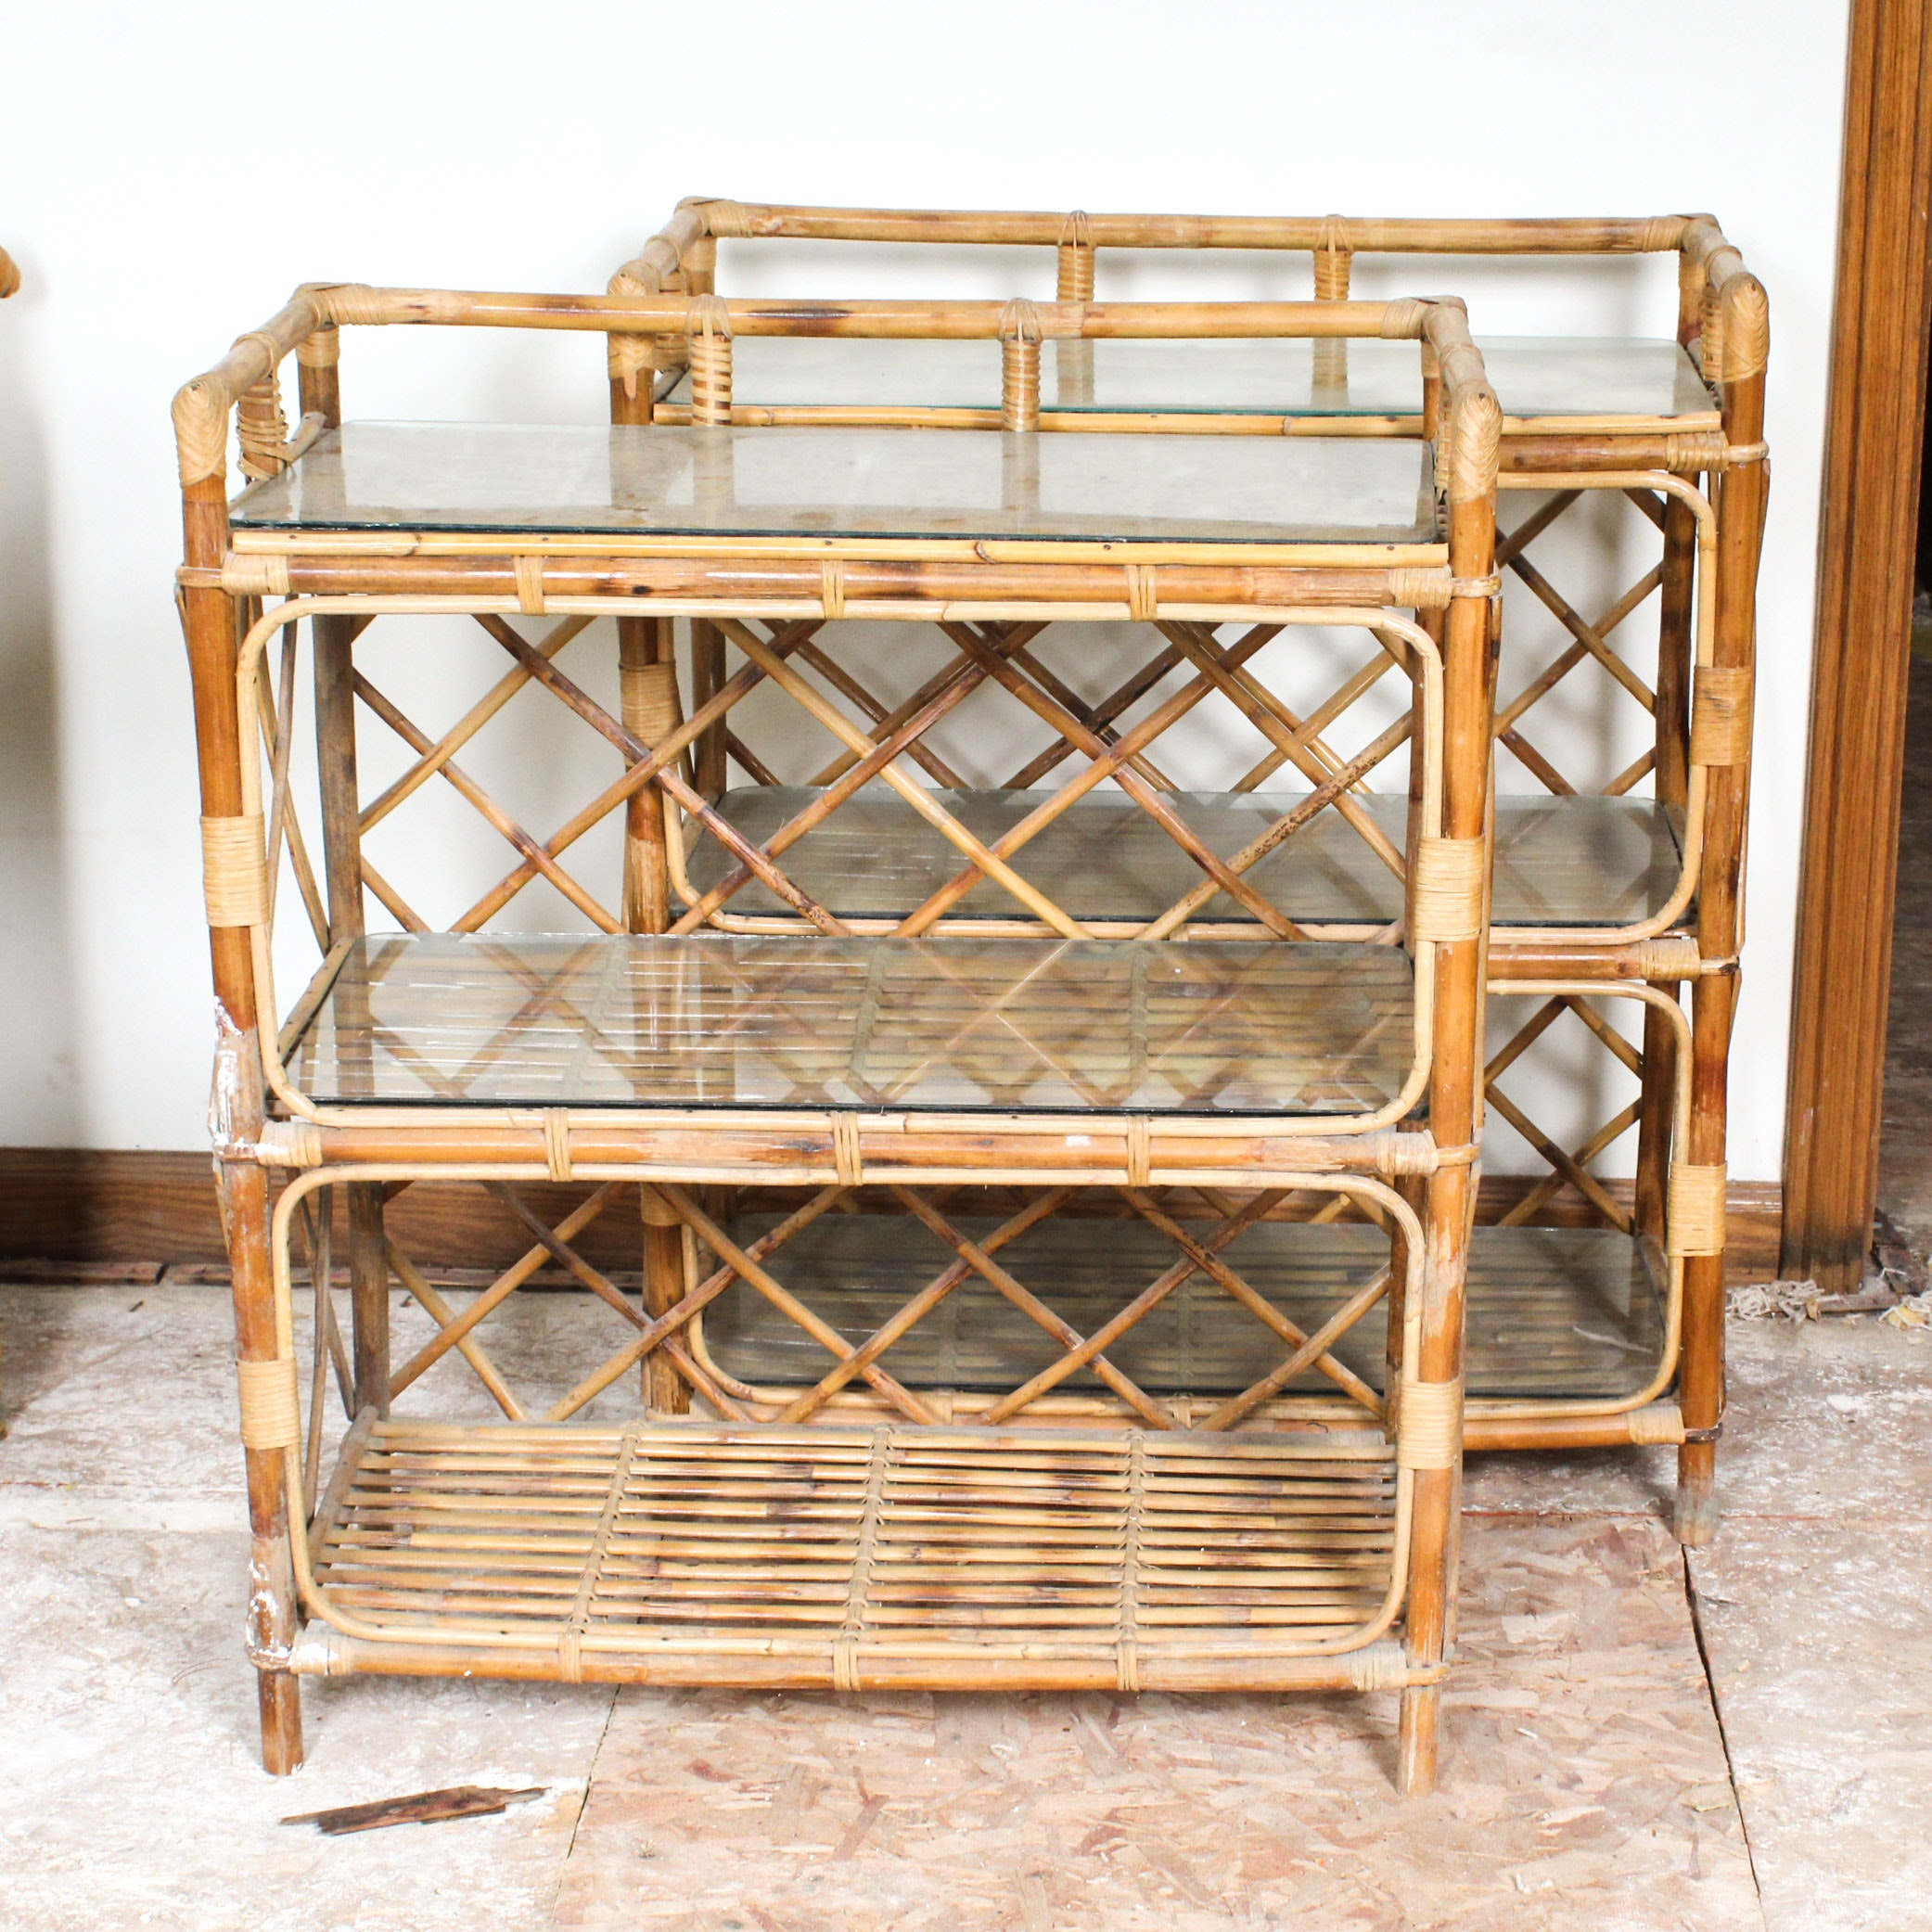 Rattan Frame Bookcases with Glass Shelves